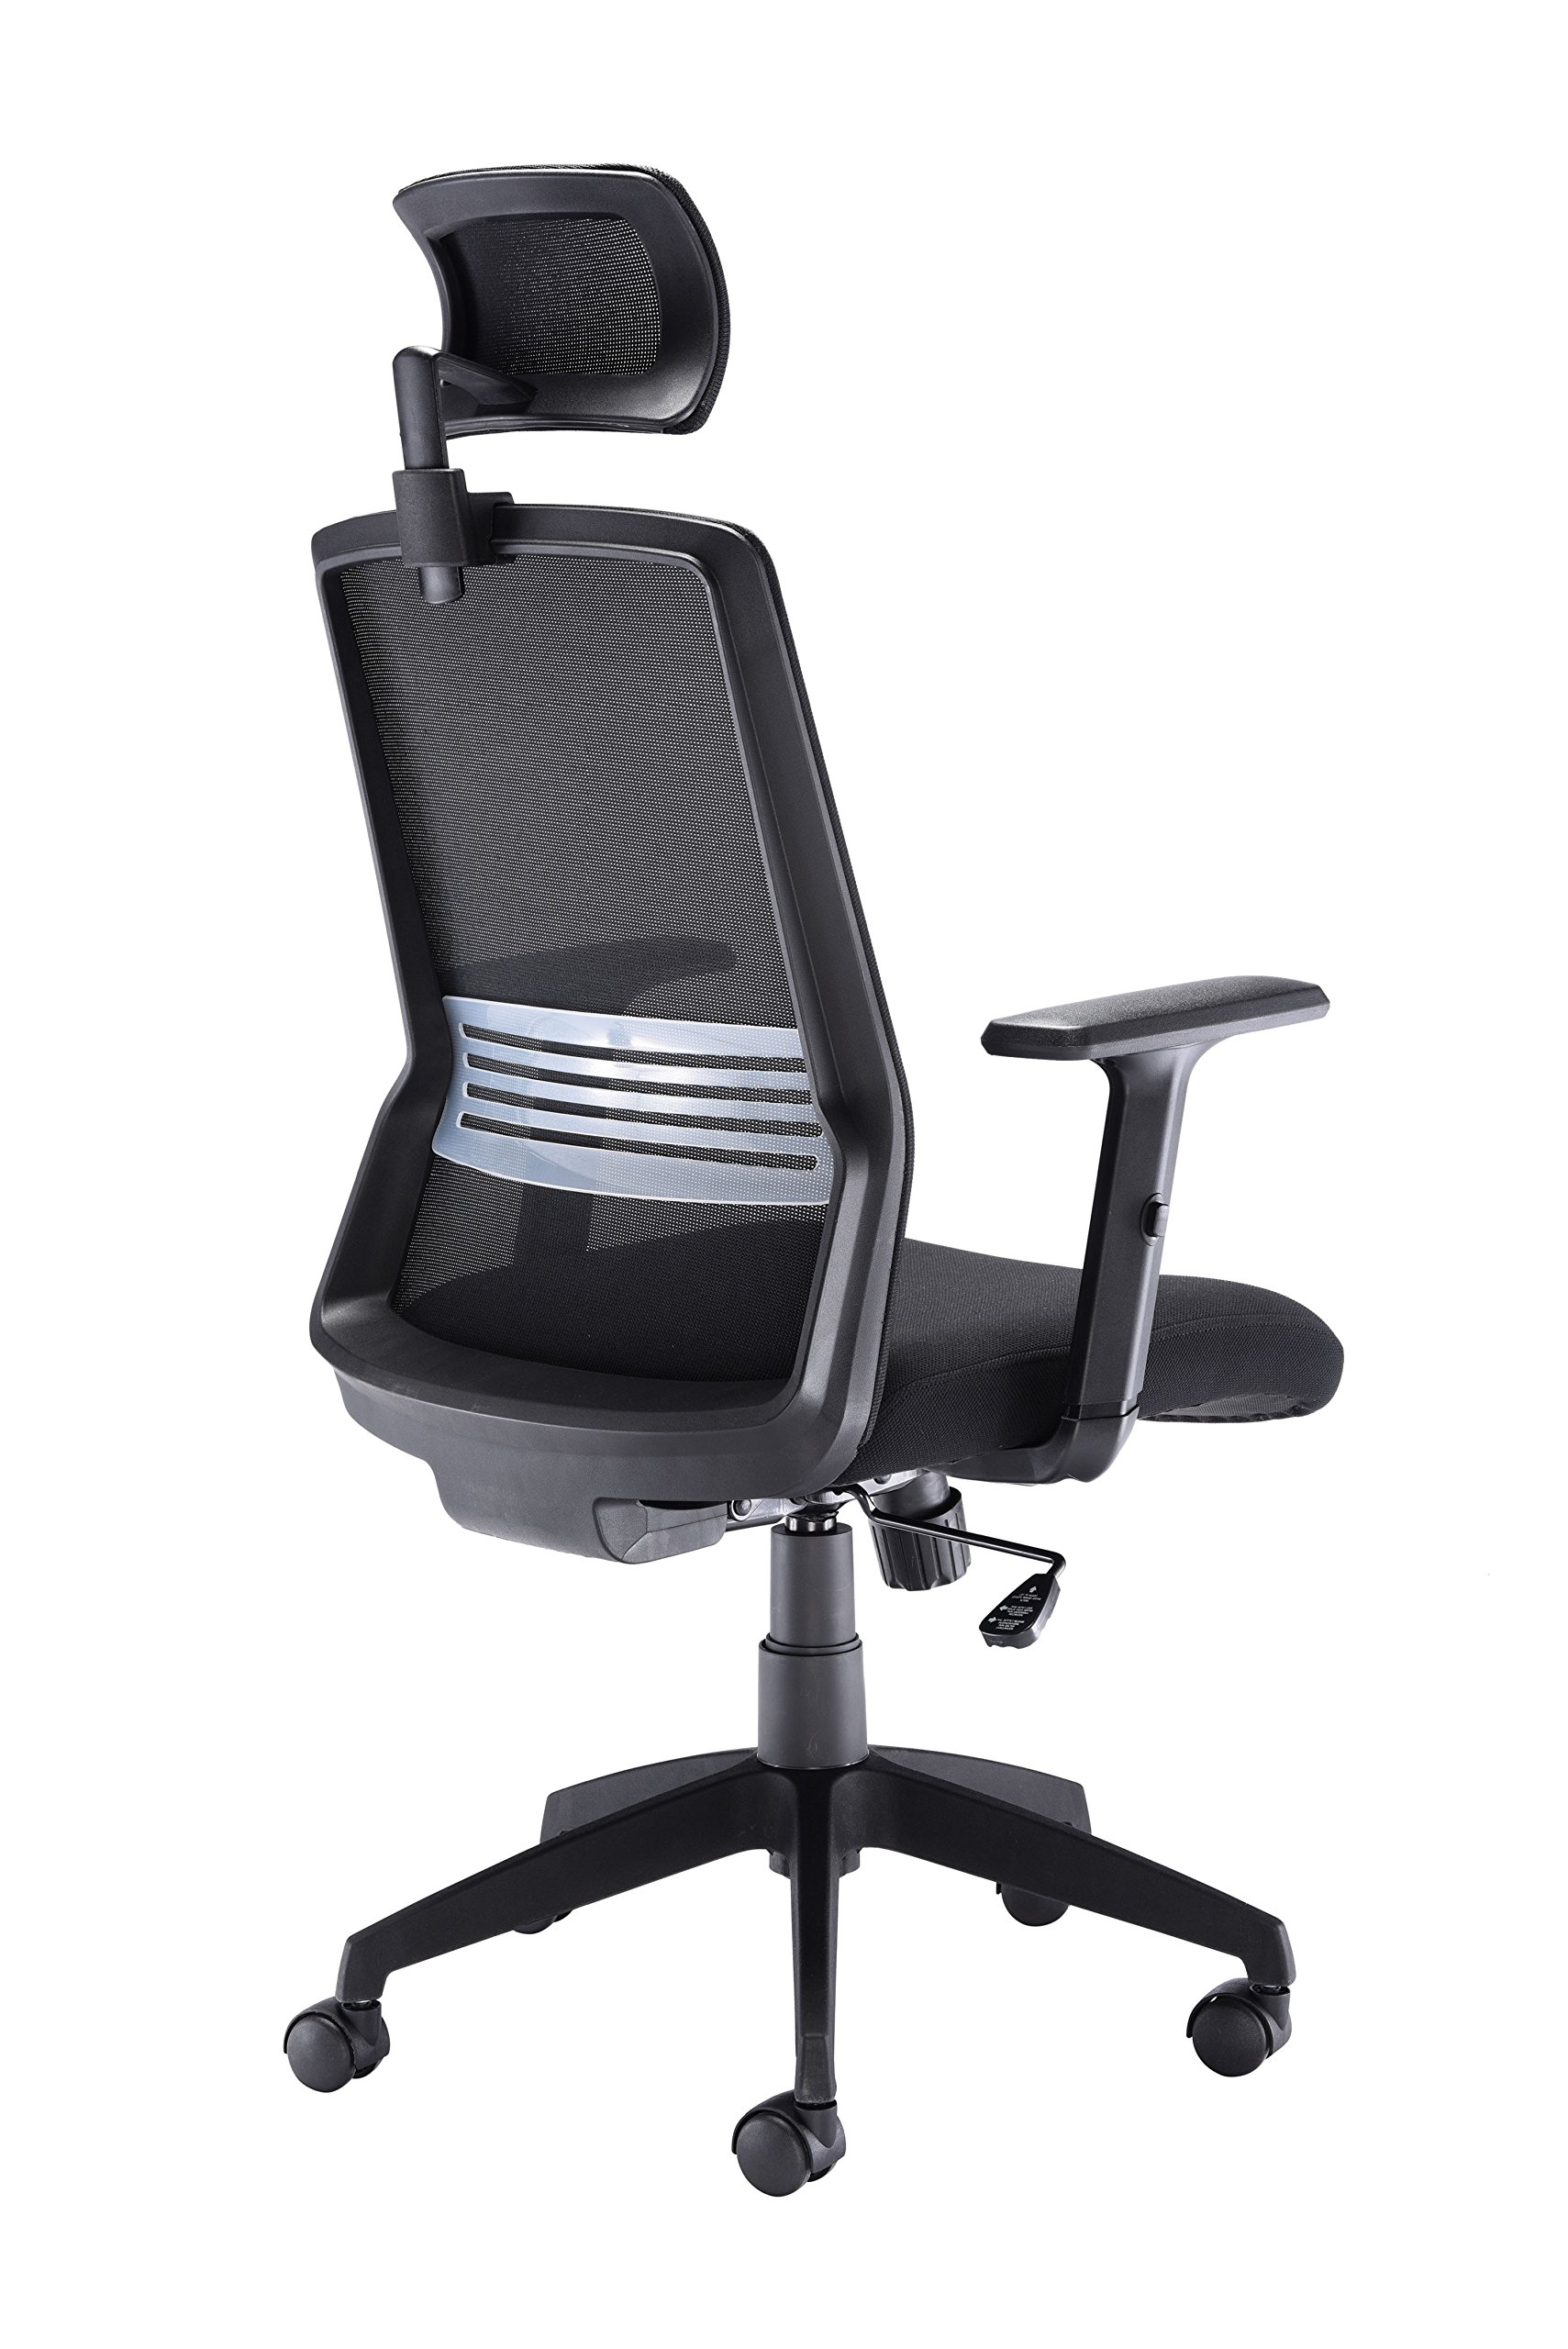 Office Hippo High Back Office Chair With Buy Online In Antigua And Barbuda At Desertcart